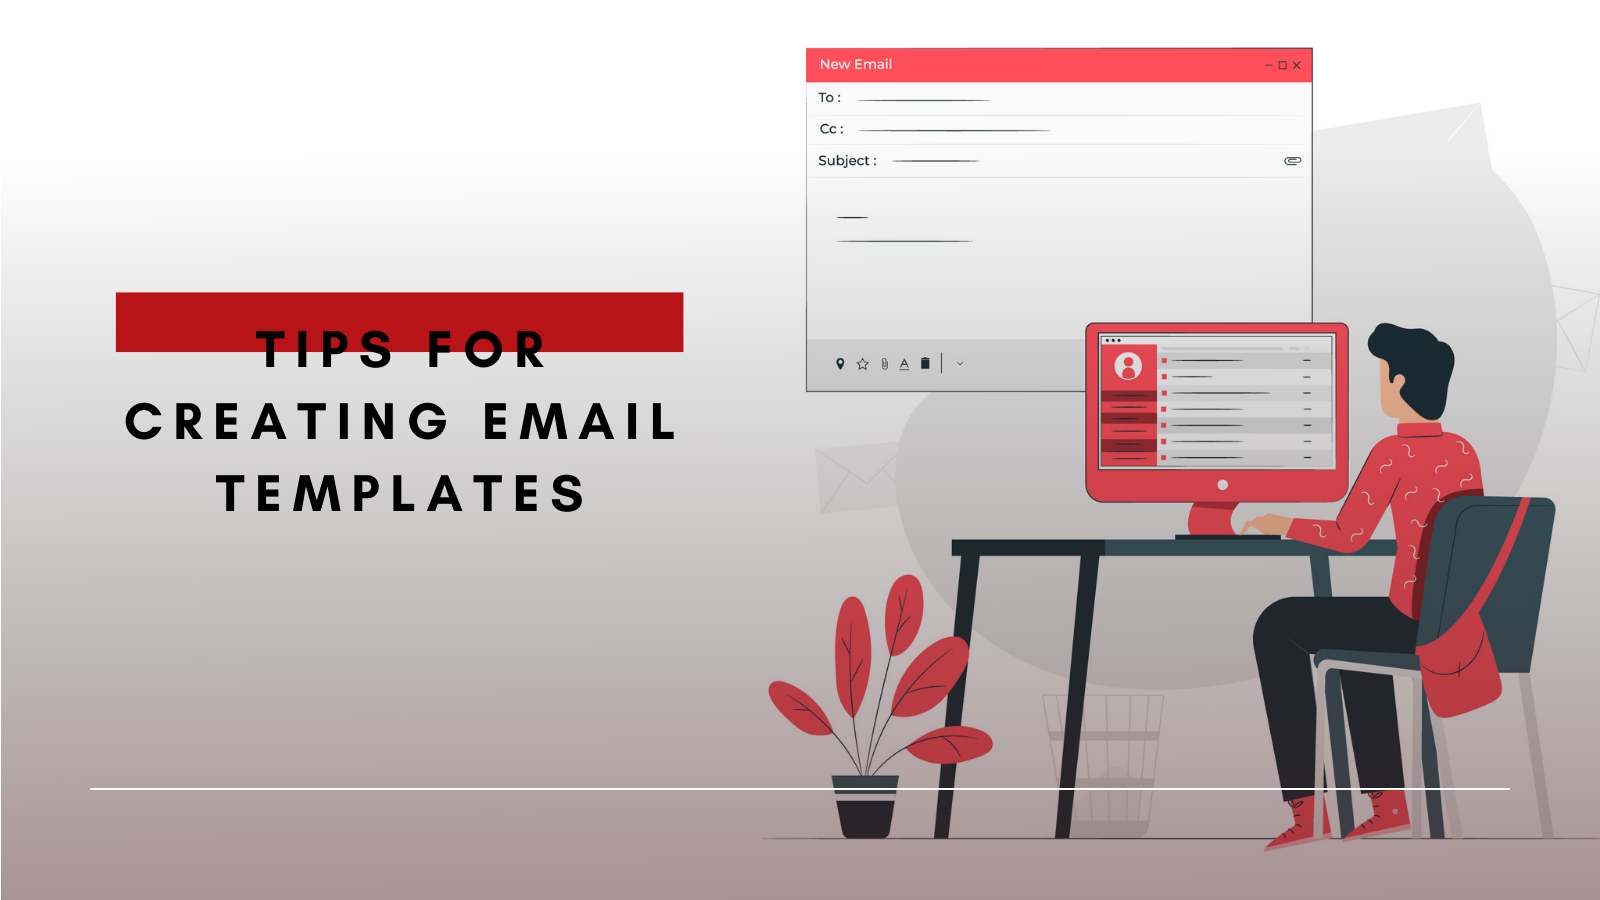 tips-for-creating-email-templates